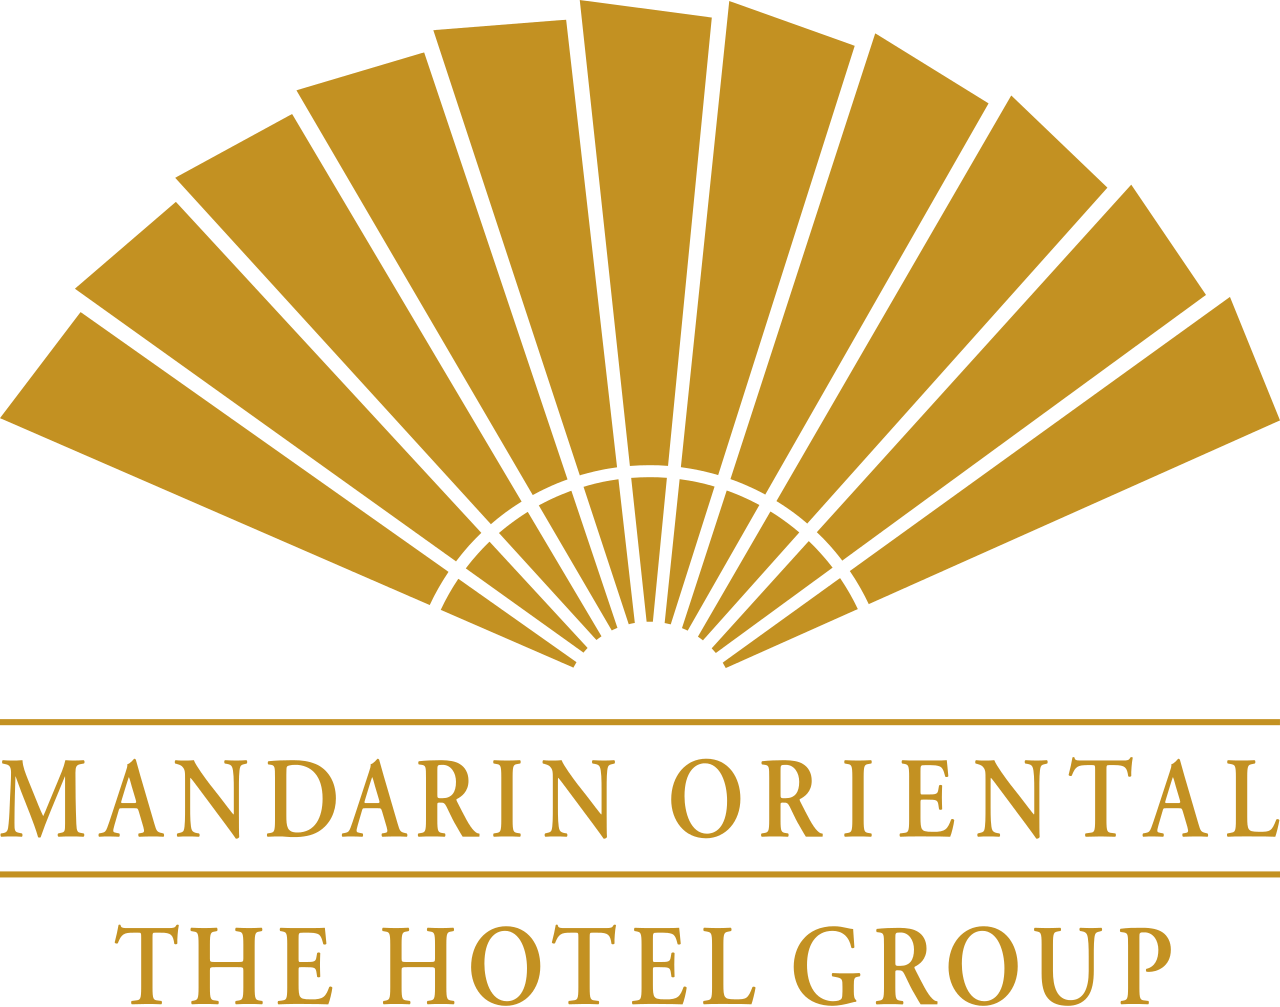 LE GROUPE MANDARIN ORIENTAL HONORÉ PAR LES ÉDITIONS DU GUIDE MICHELIN 2017…